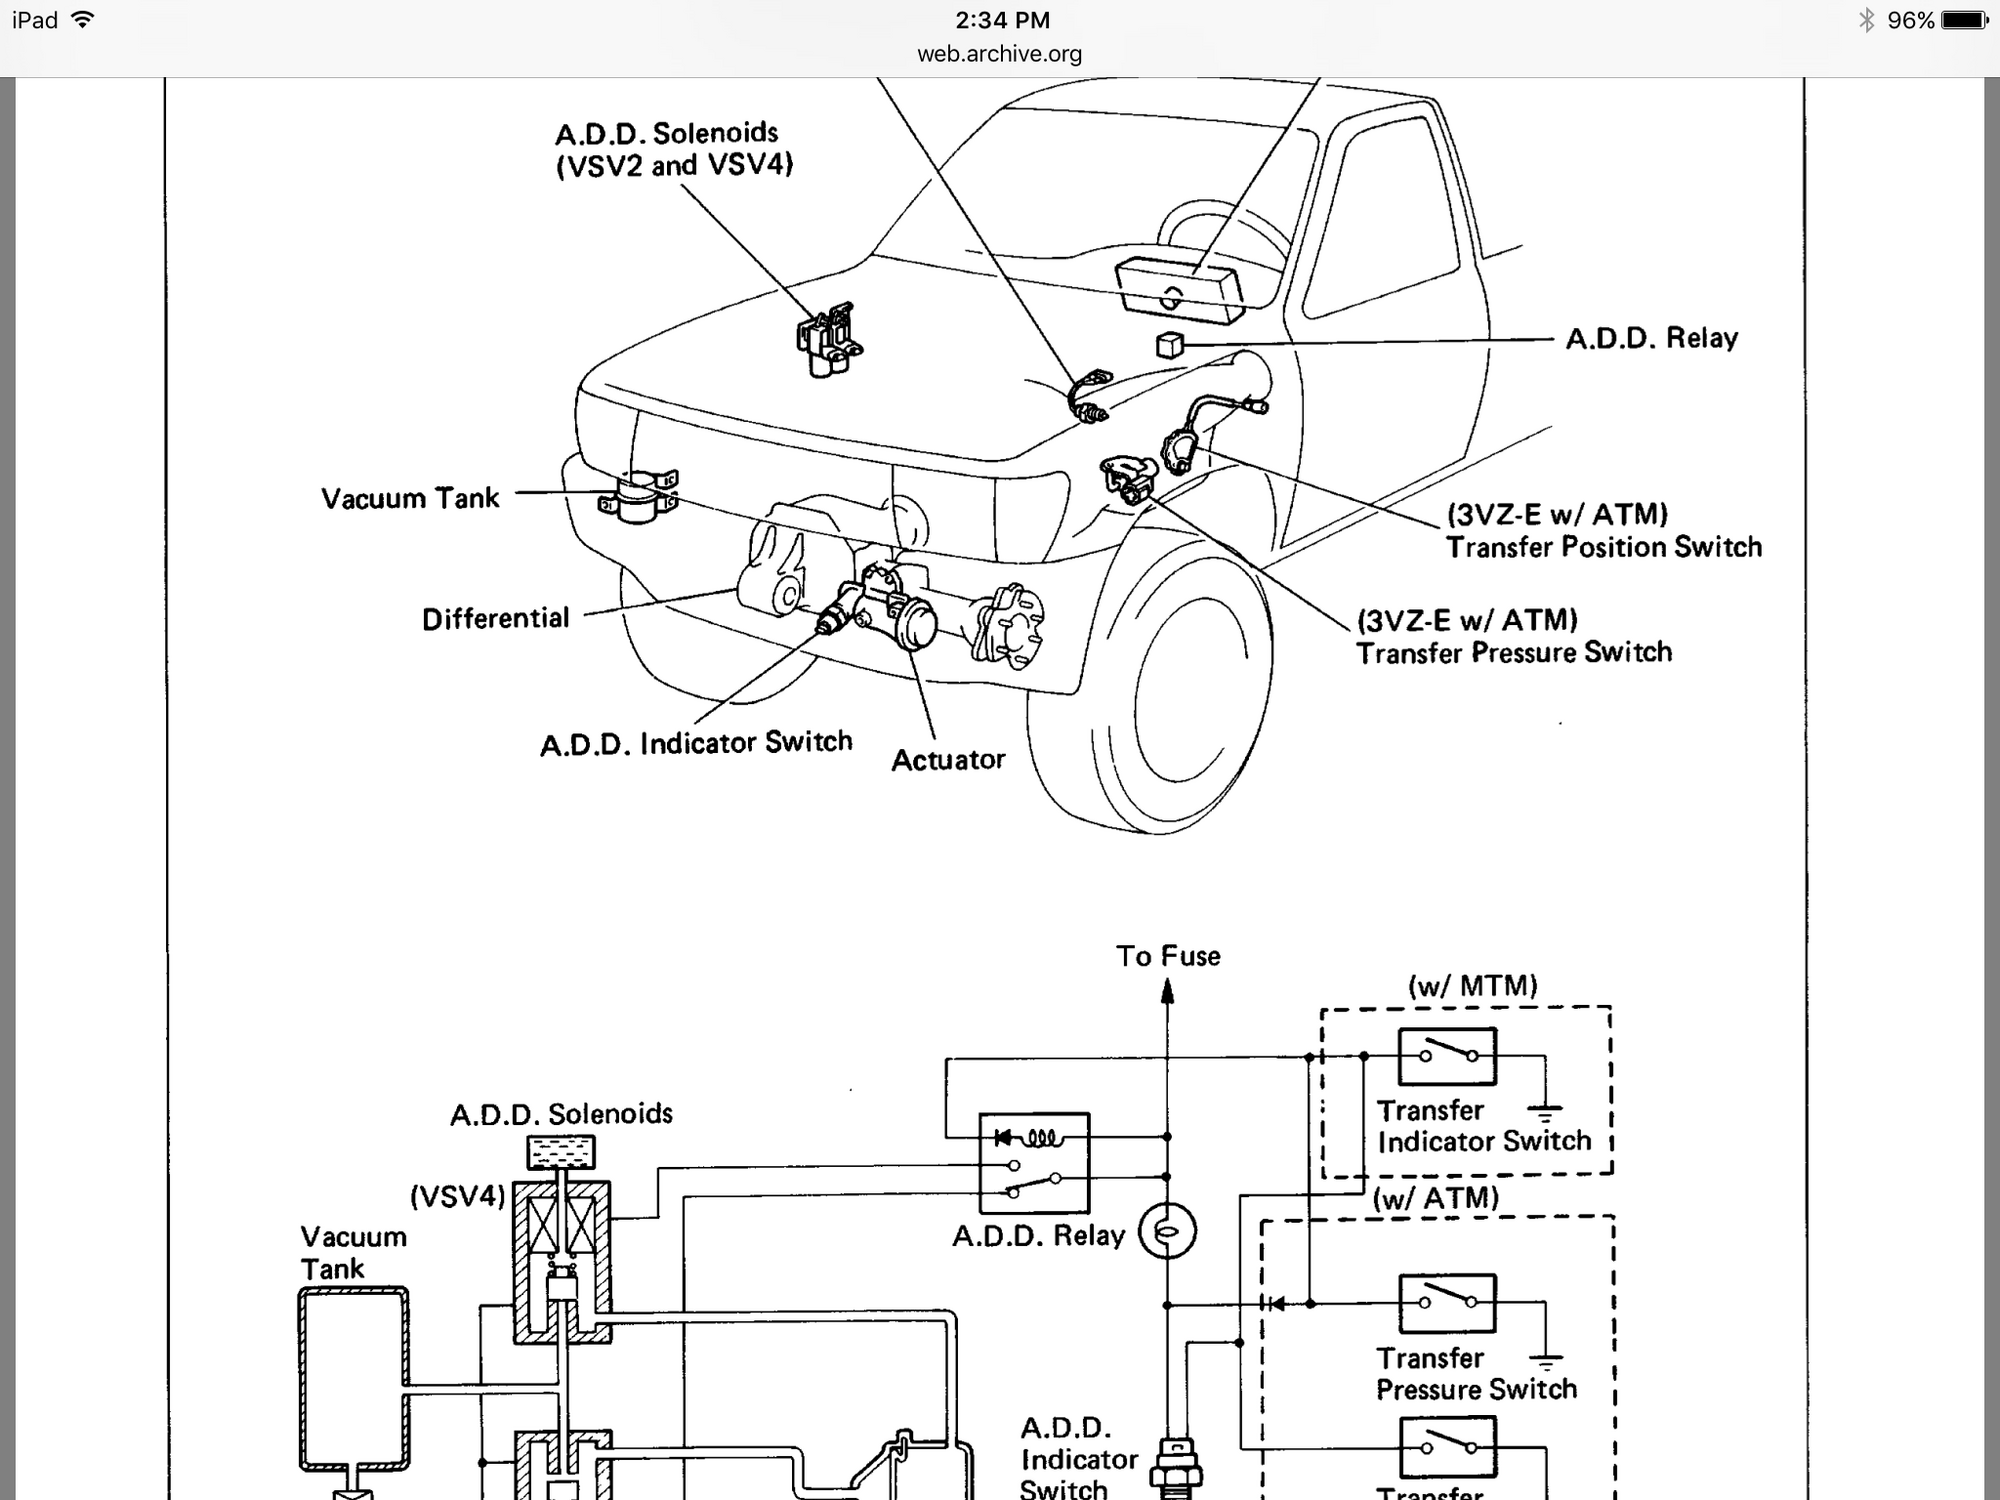 1993 Nissan 300zx Radio Wiring Diagram: 87 Toyota Pickup Radio Wiring Diagram At Nayabfun.com